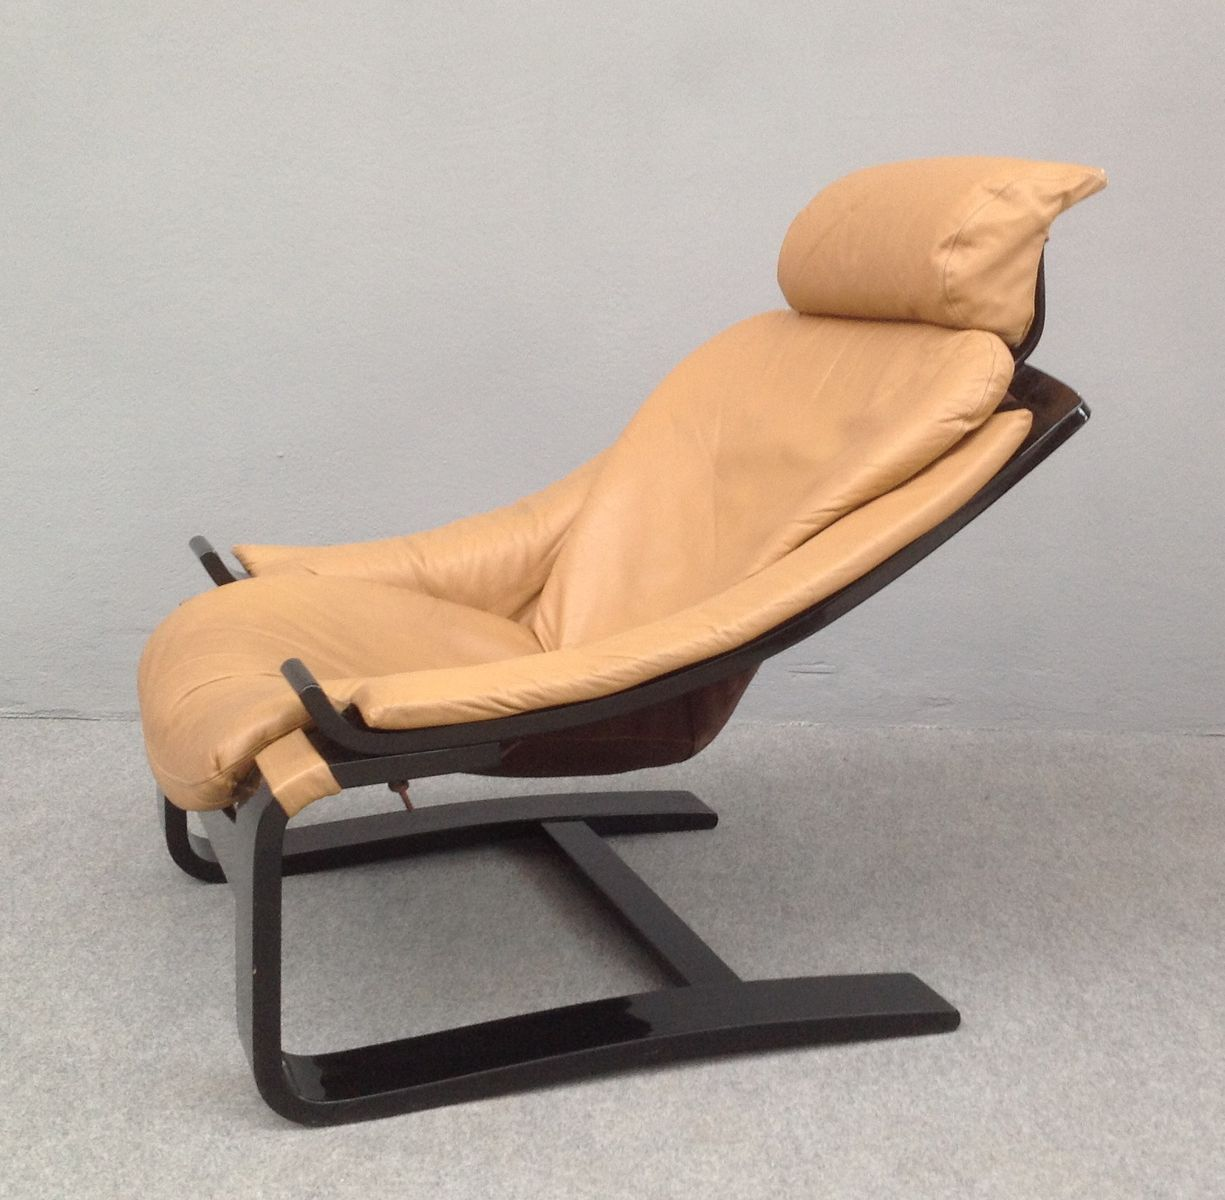 45ea9d1d5 ... Luxembourg Lounge Chair by Kroken De Lounge Chair By Ake Fribytter For  Sale At Pamono ...